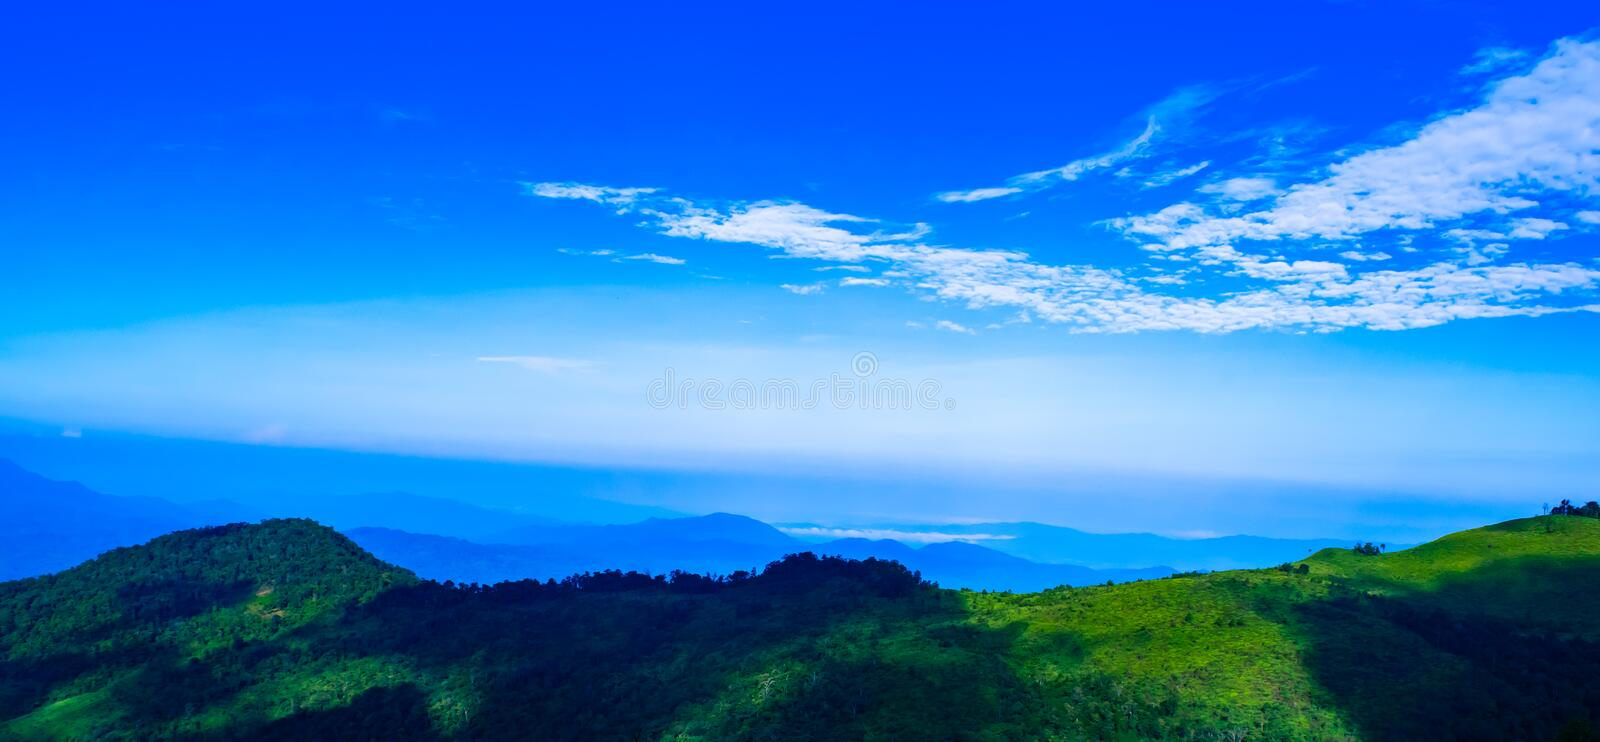 Beautiful blue sky background over mountains with white cloudy in the morning at Phu Soi Dao, Uttaradit northern of Thailand. stock photo